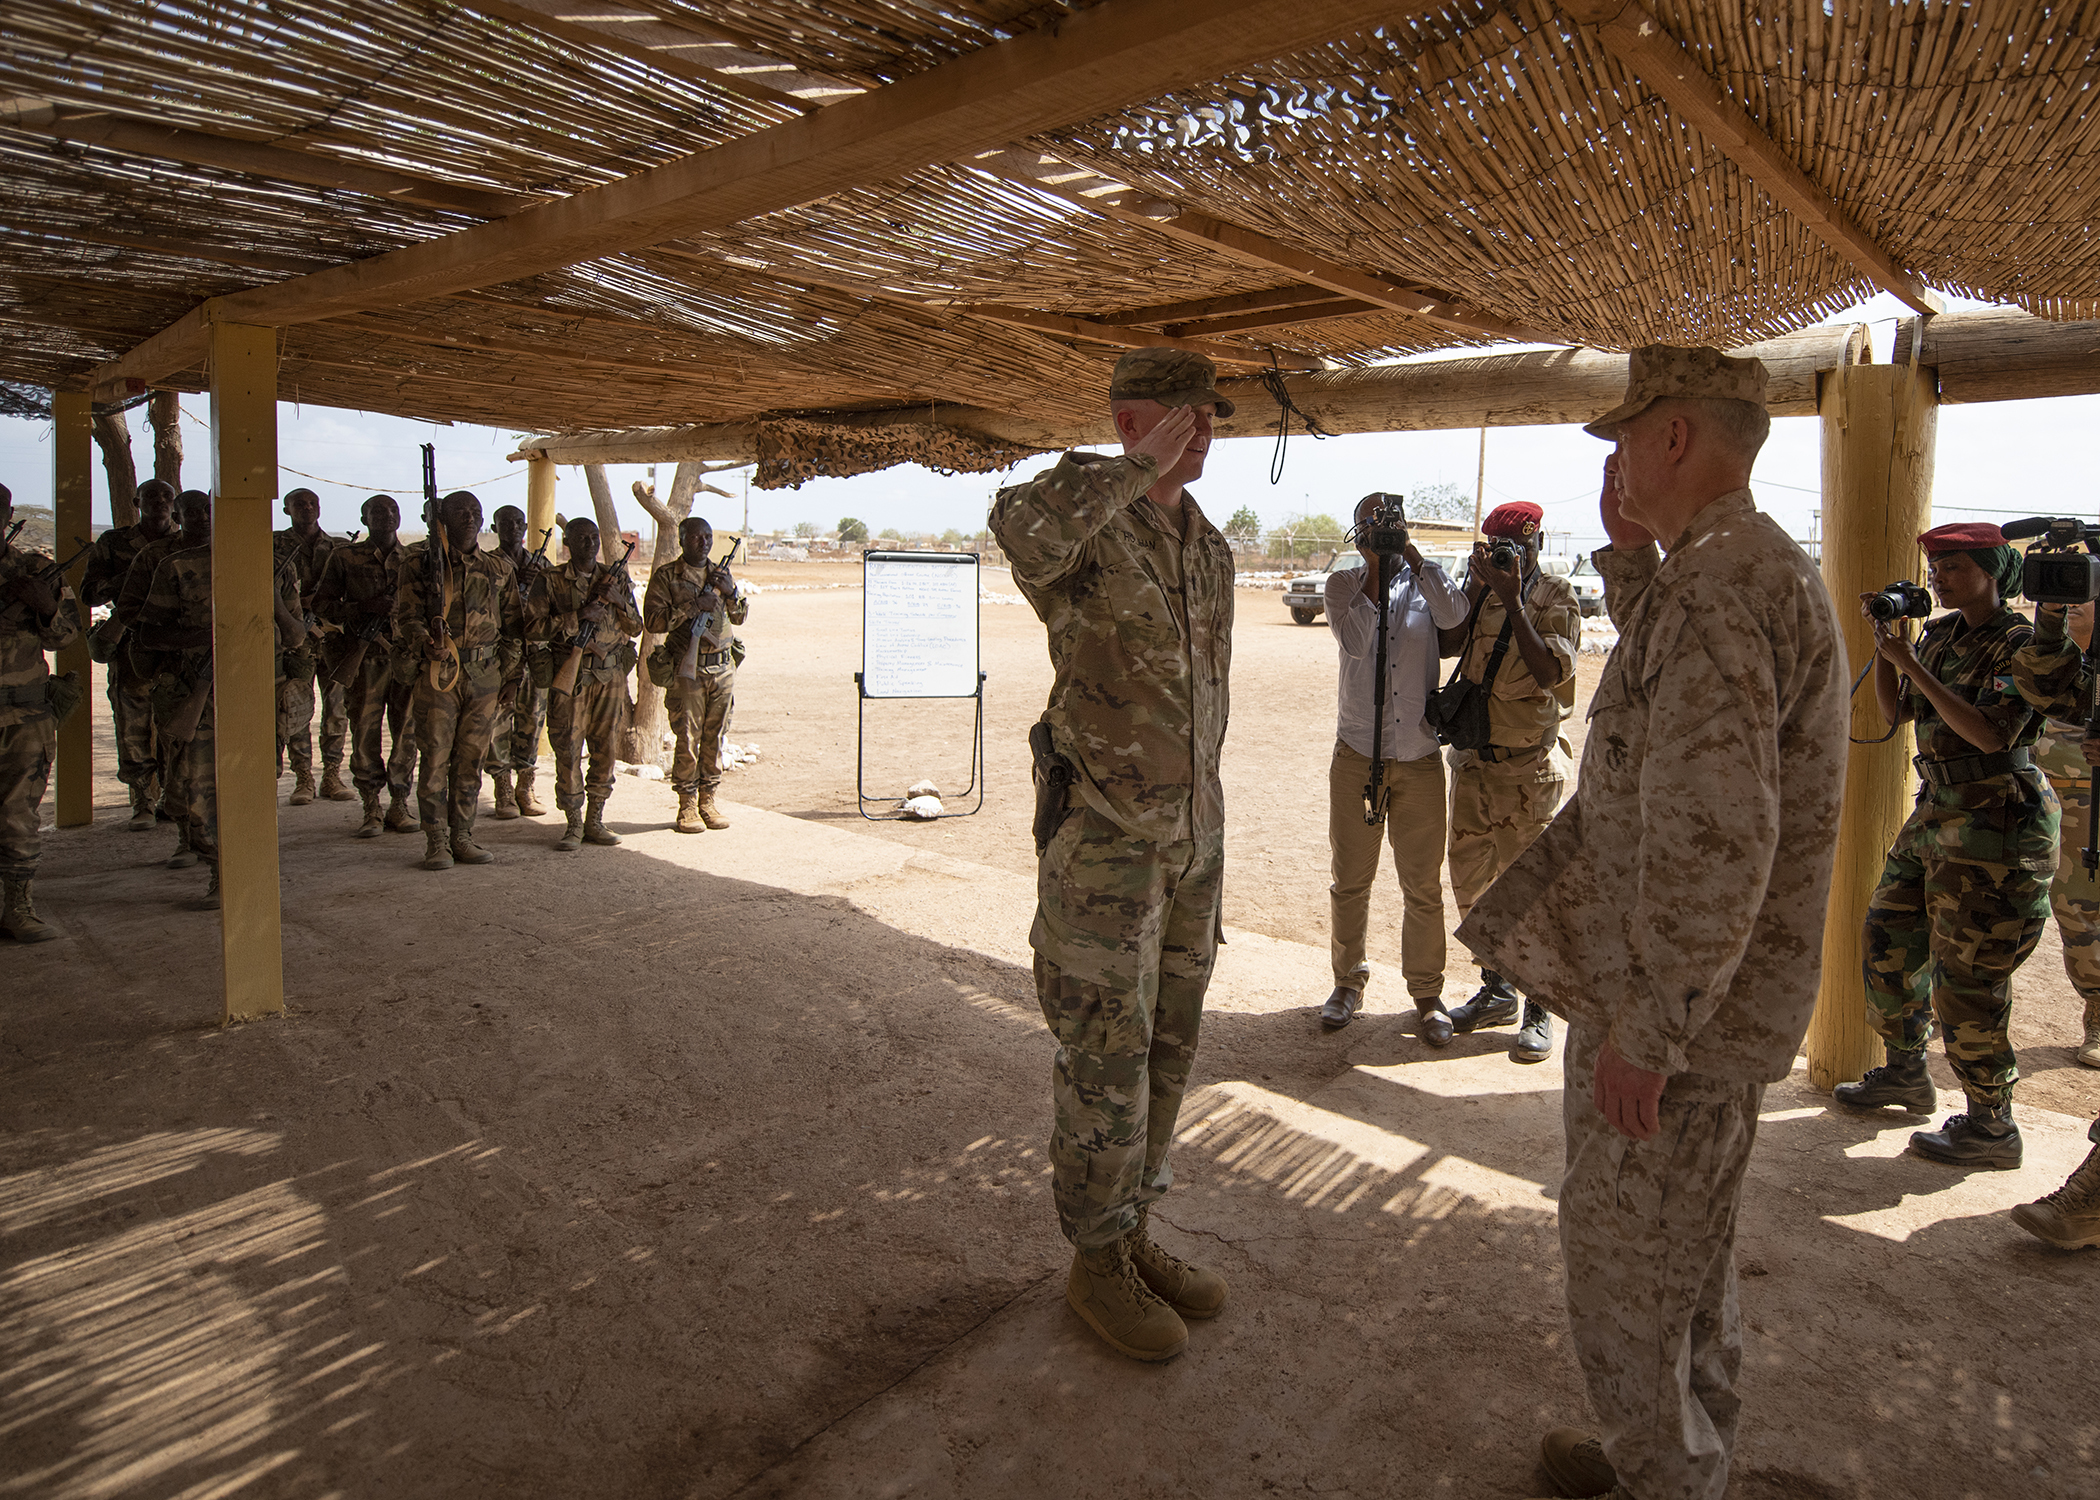 U.S. Marine Corps Gen. Thomas D. Waldhauser, right, commander of U.S. Africa Command, returns the salute of the officer in charge of NCO training for the Rapid Intervention Battalion (RIB), U.S. Army 1st Lt. Travis Holihan, Headquarters Company, 1-26 Infantry Battalion, 2nd Brigade Combat Team, 101st Airborne, assigned to Combined Joint Task Force-Horn of Africa, during a visit with senior Djiboutian officials, including Chief of General Staff of the Djibouti Armed Forces Gen. Zakaria Cheik Ibrahim, at a training base in Djibouti, March 21, 2019. While in Djibouti, Waldhauser observed the ongoing growth and development of the RIB, the Djiboutian army's elite military force, which the U.S. is in the process of training and equipping at the request of the Djiboutian government. (U.S. Air Force photo by Tech. Sgt. Shawn Nickel)